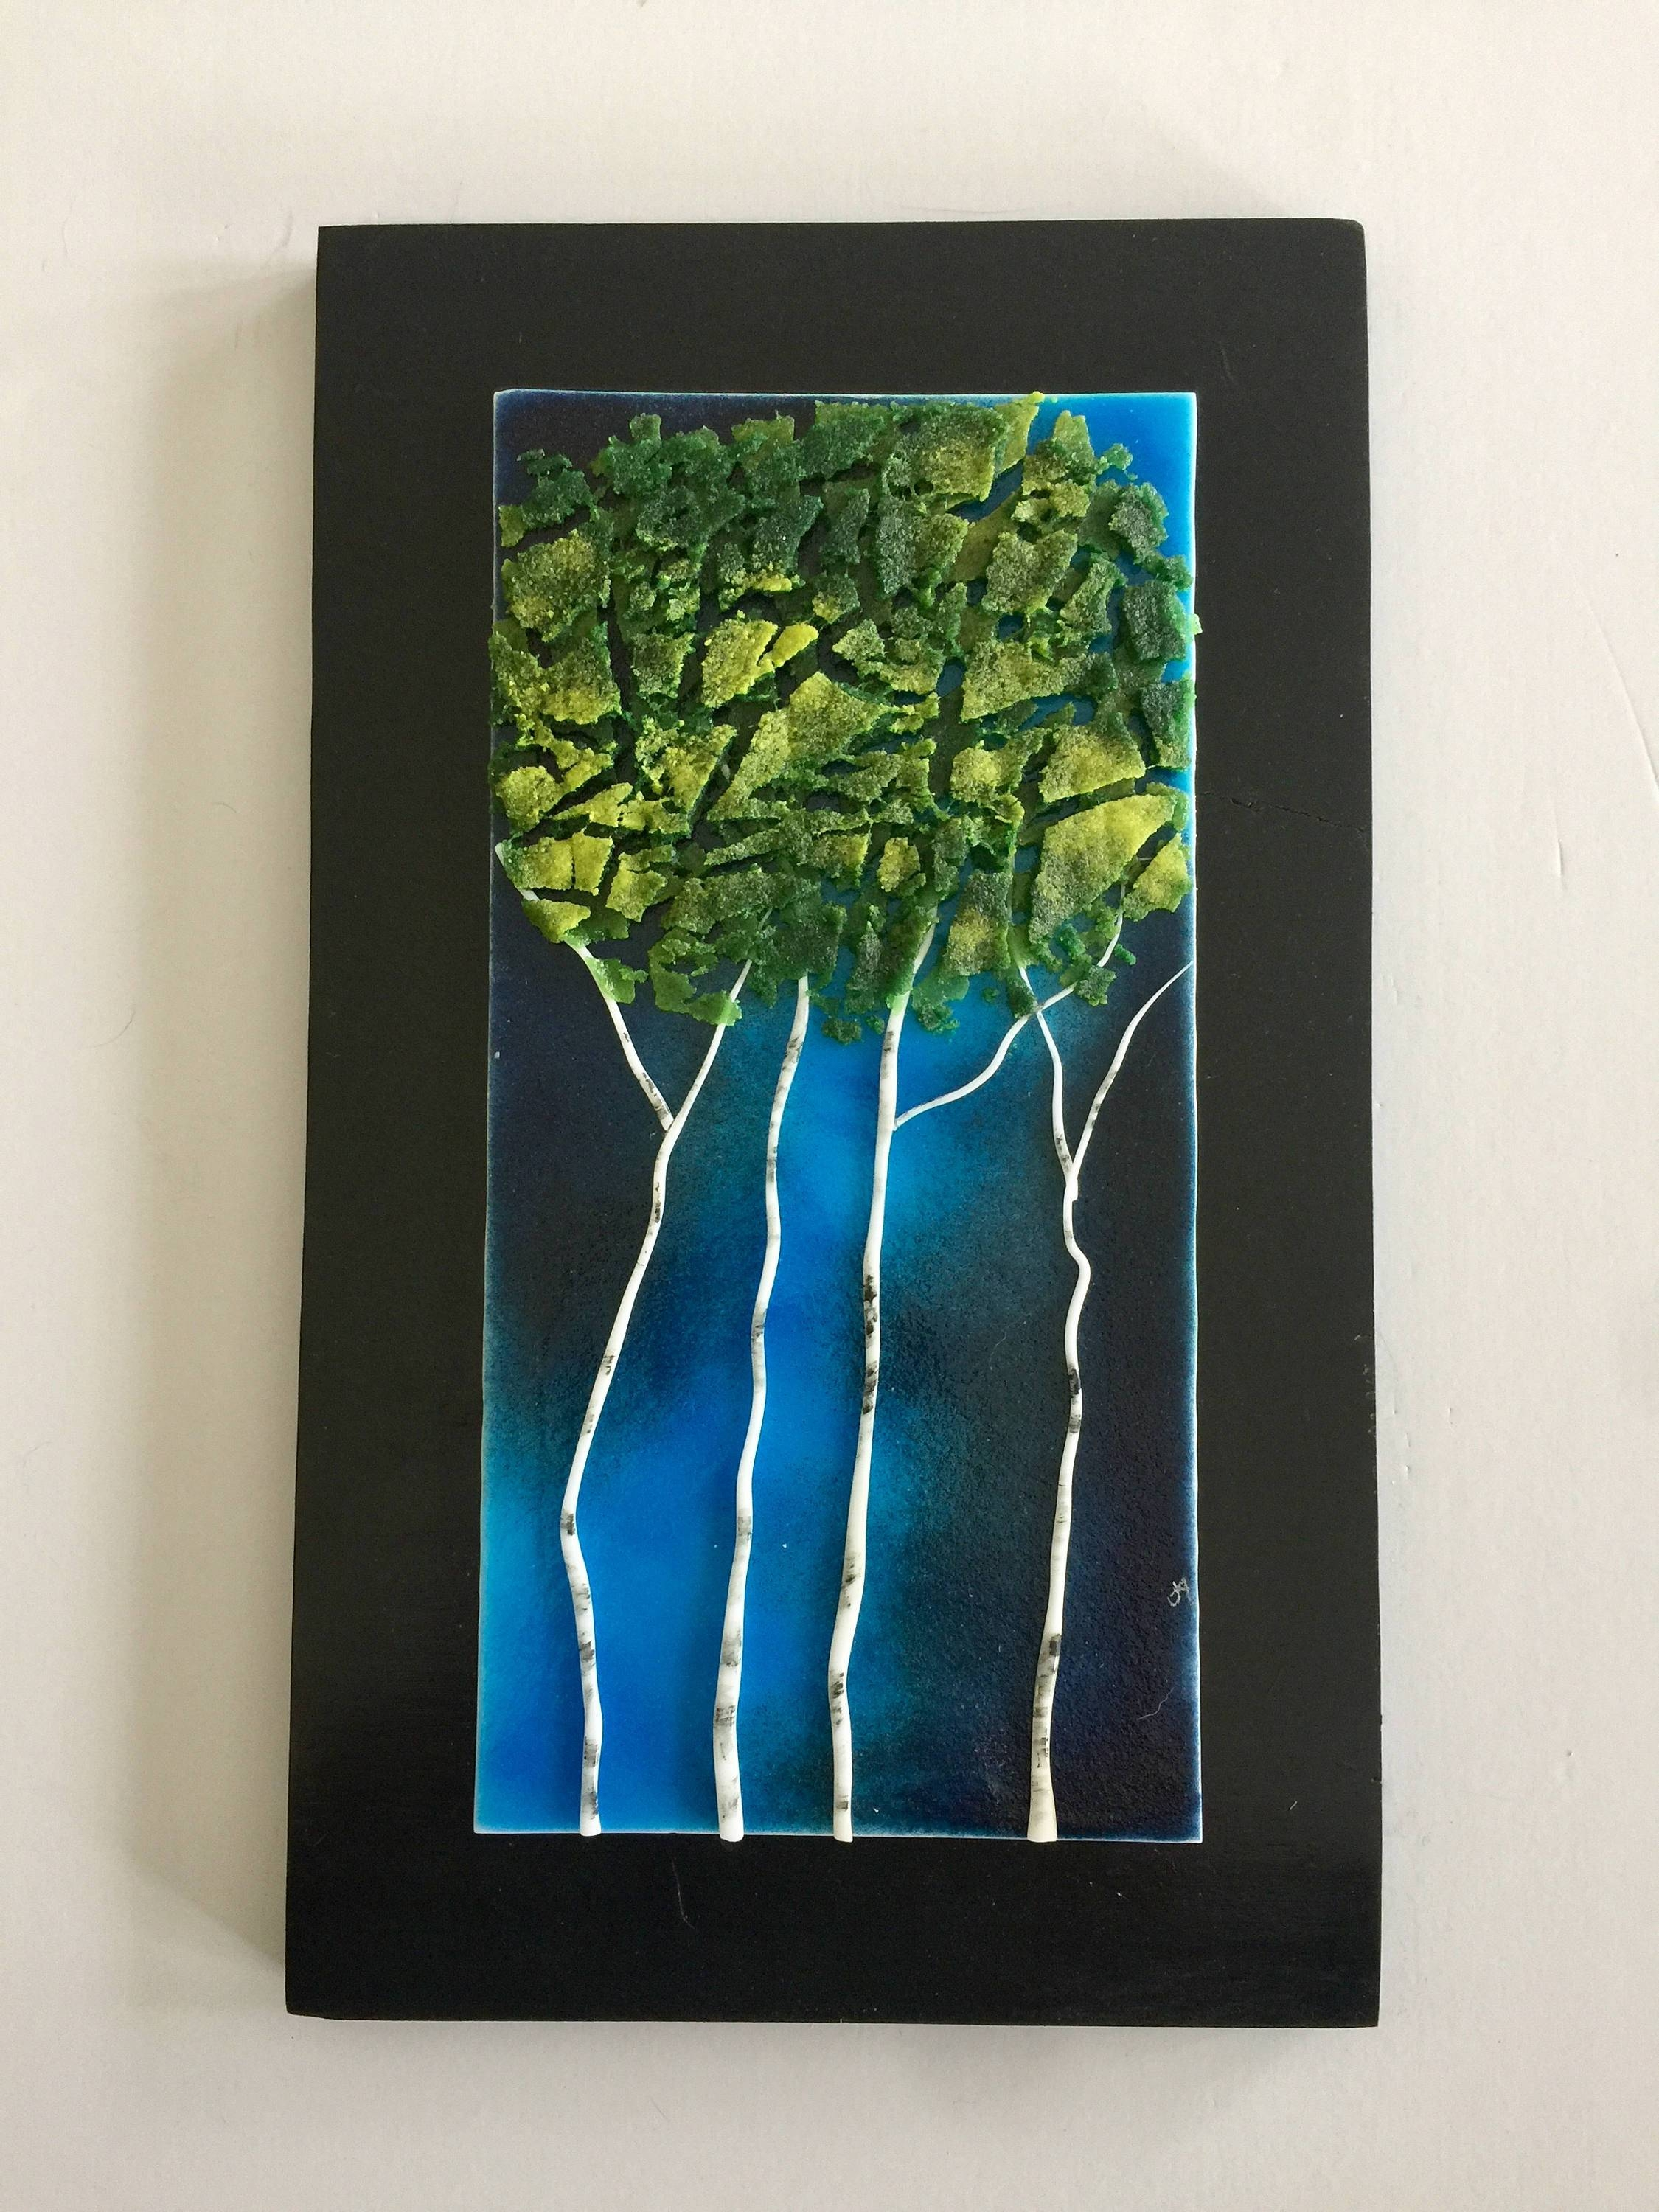 Fused Glass Art, Fused Glass, Handmade Fused Glass,fused Glass Regarding Recent Fused Glass Wall Art Panels (View 13 of 25)